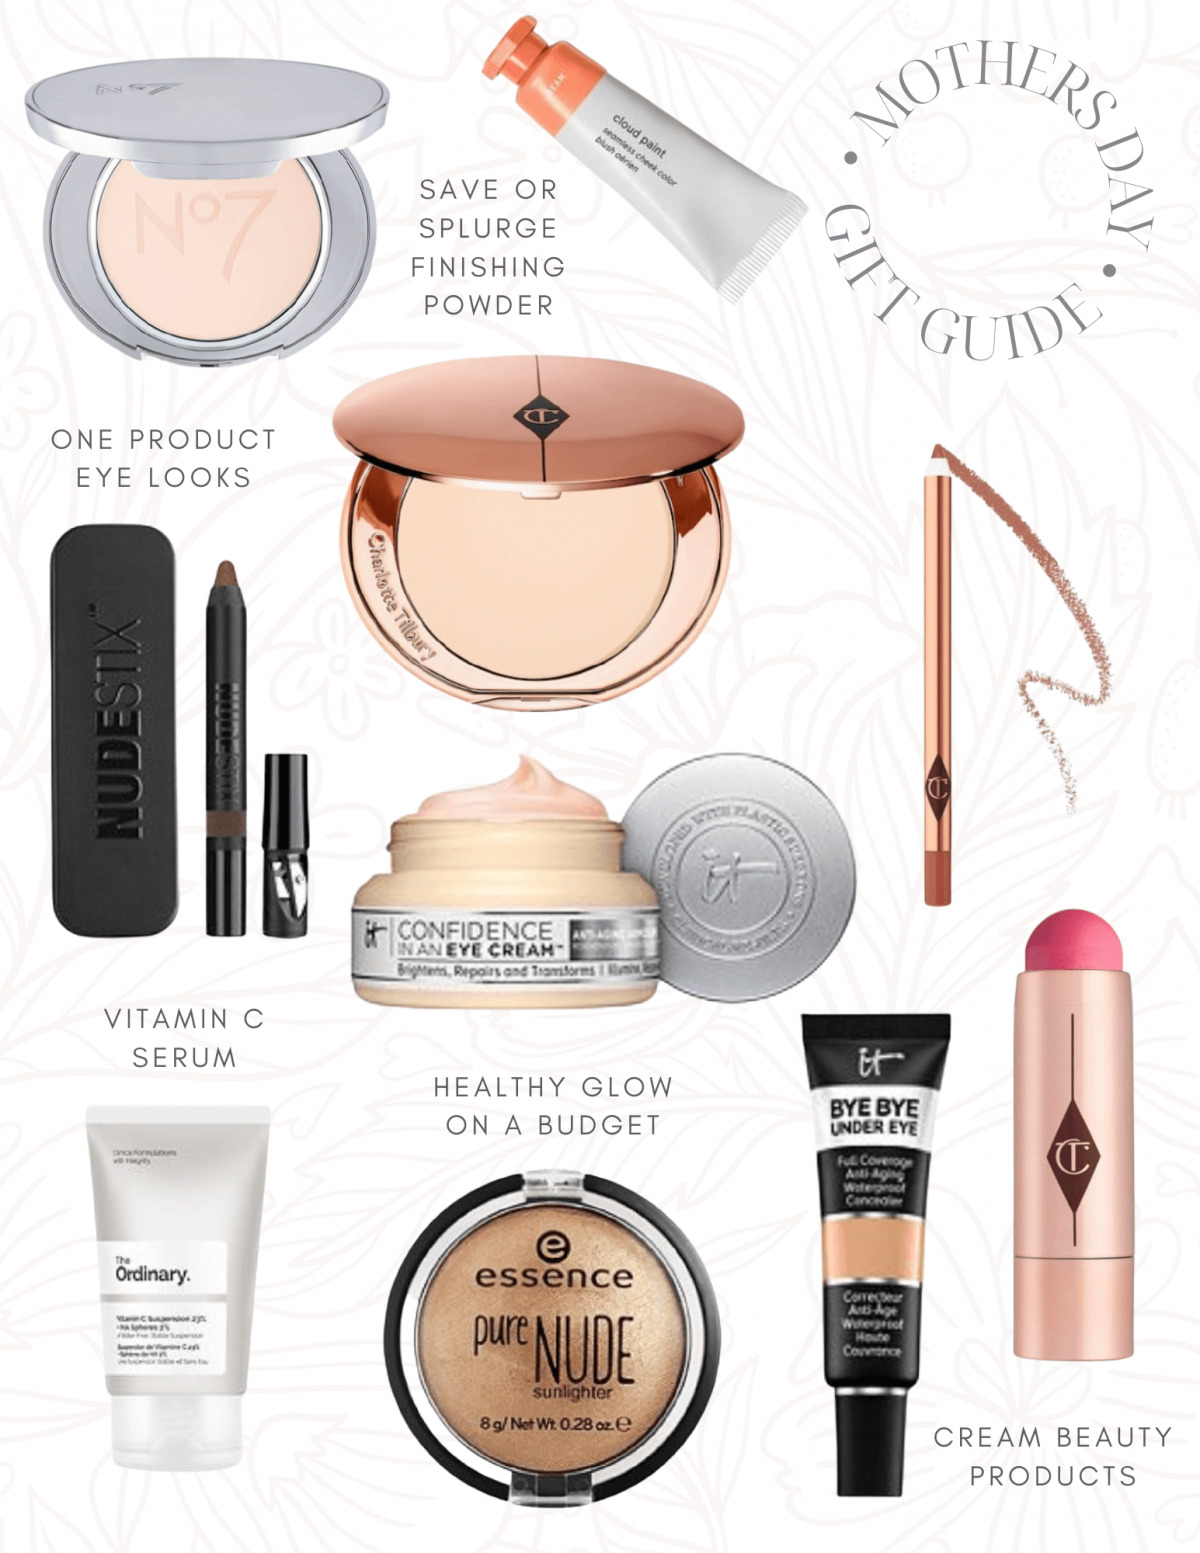 Mother's Day 2021 Beauty Gift Ideas